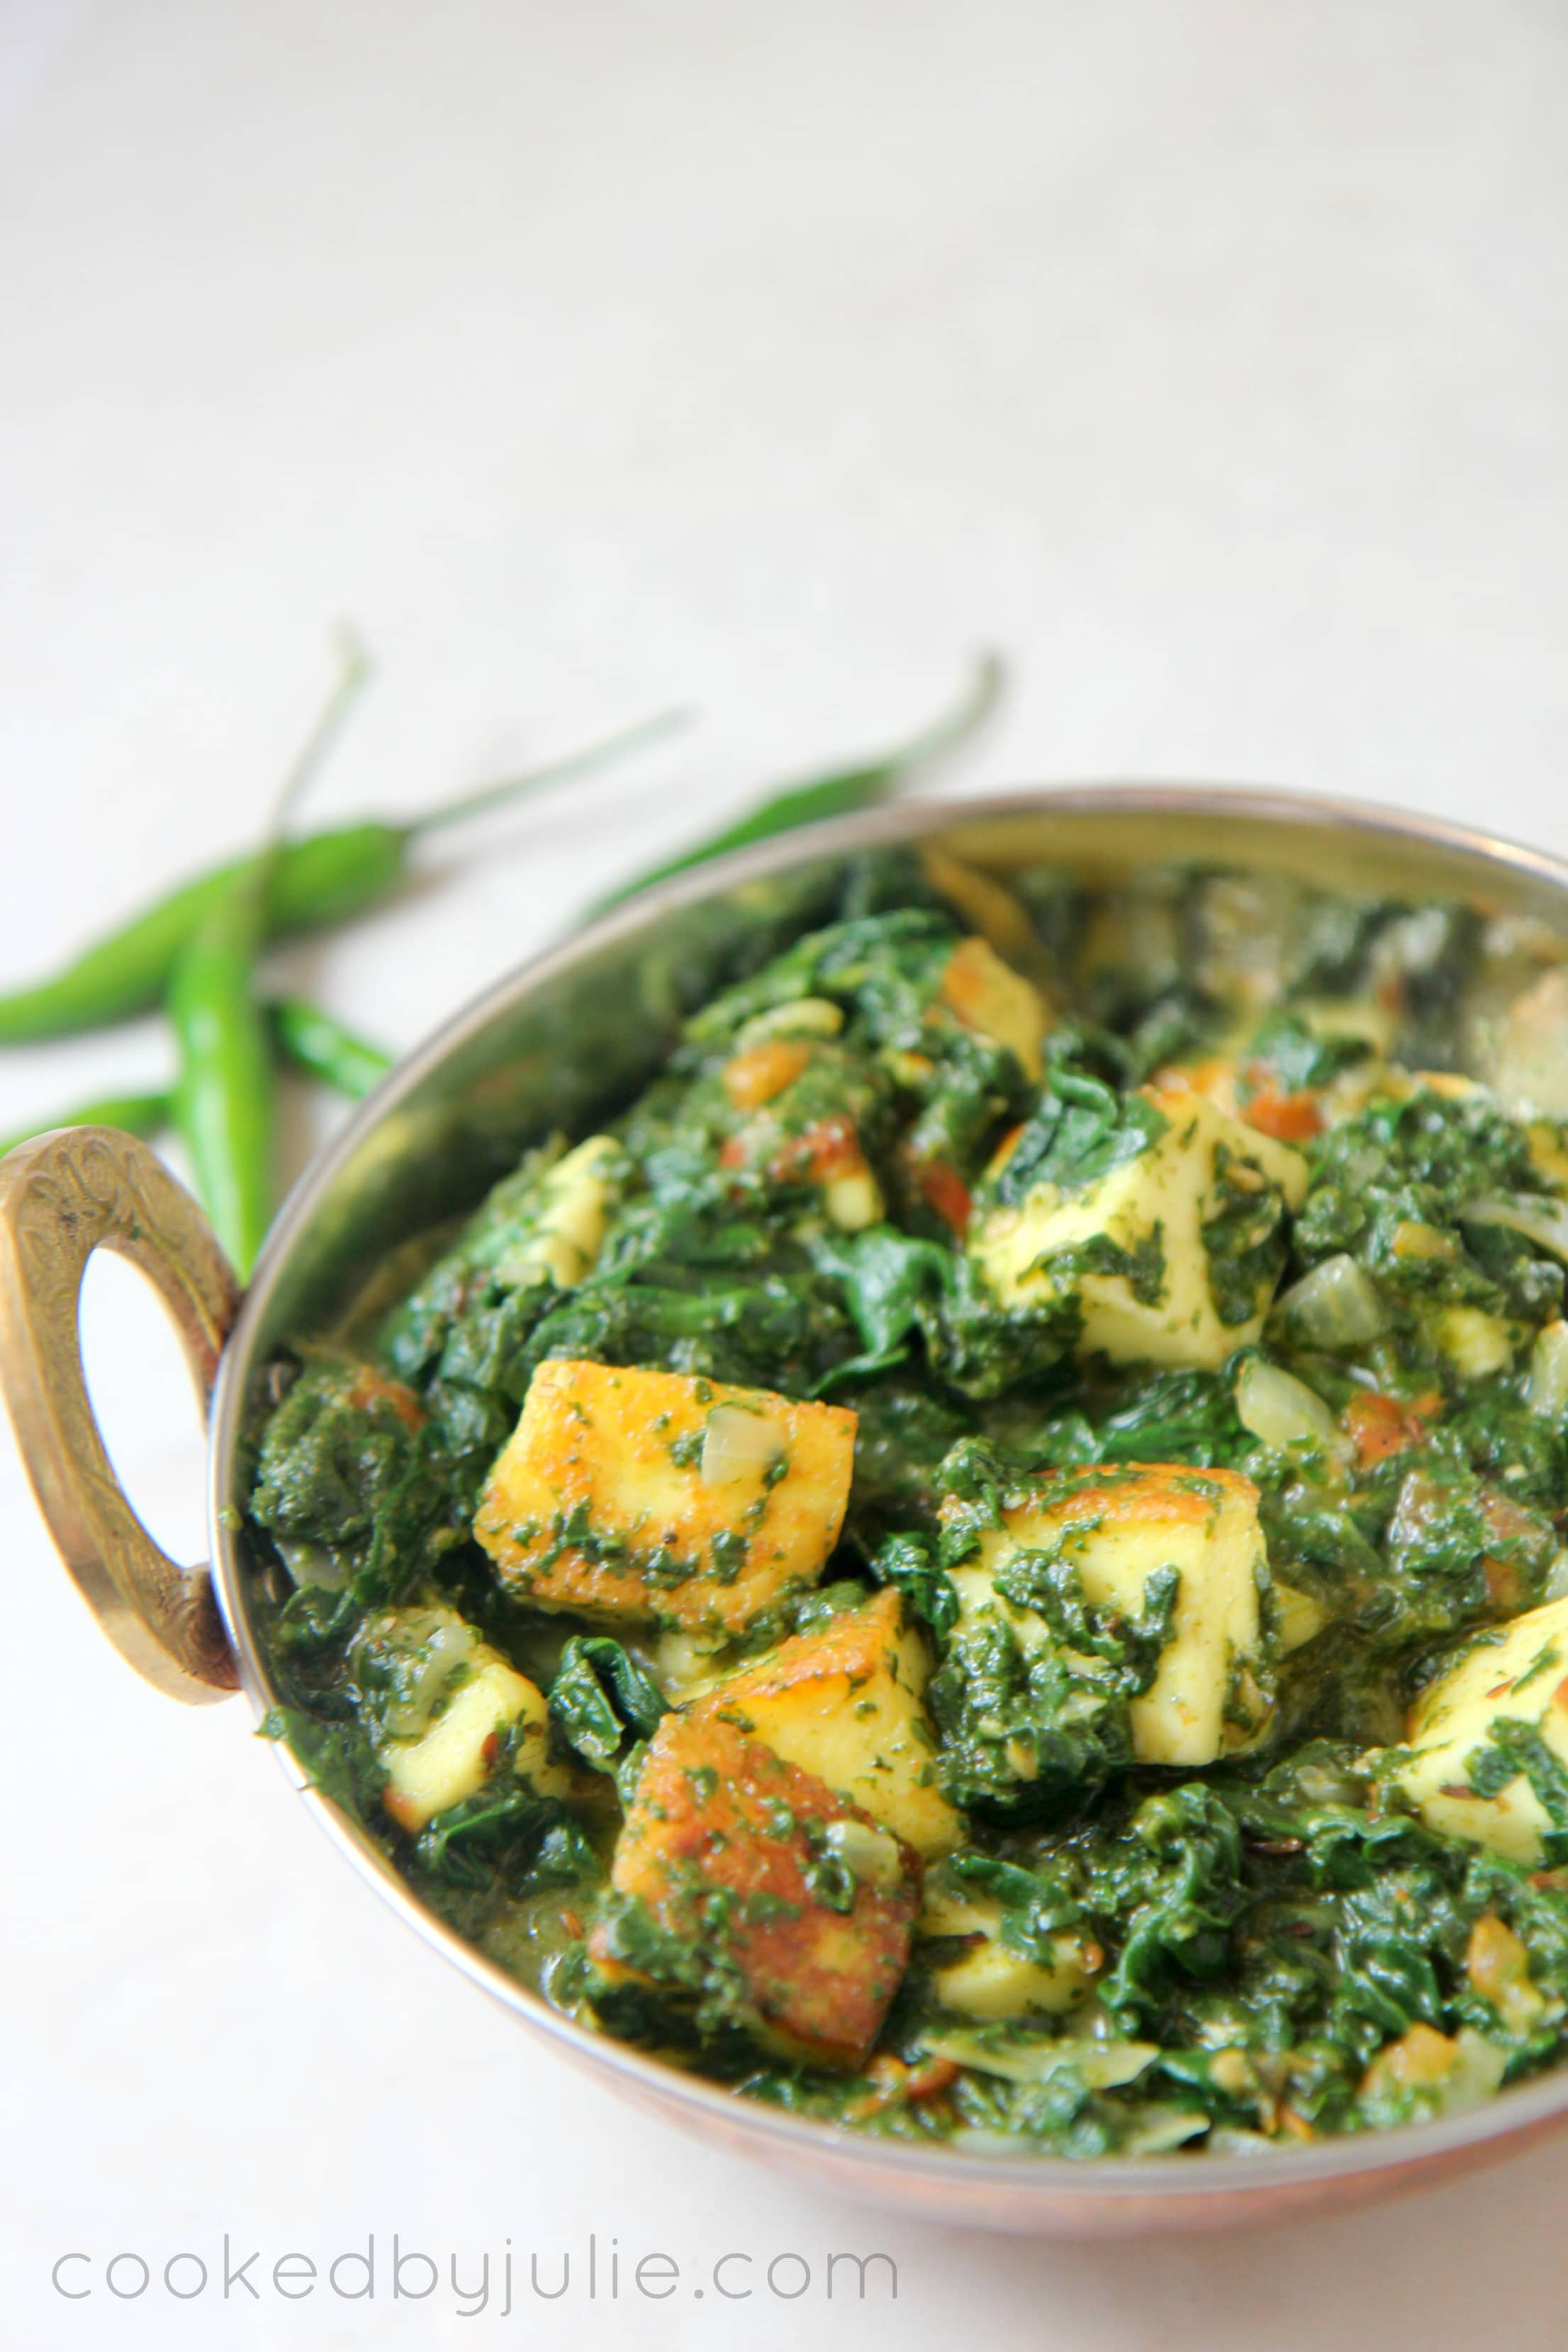 Saag Paneer - Keto Friendly, Gluten-Free, Vegetarian